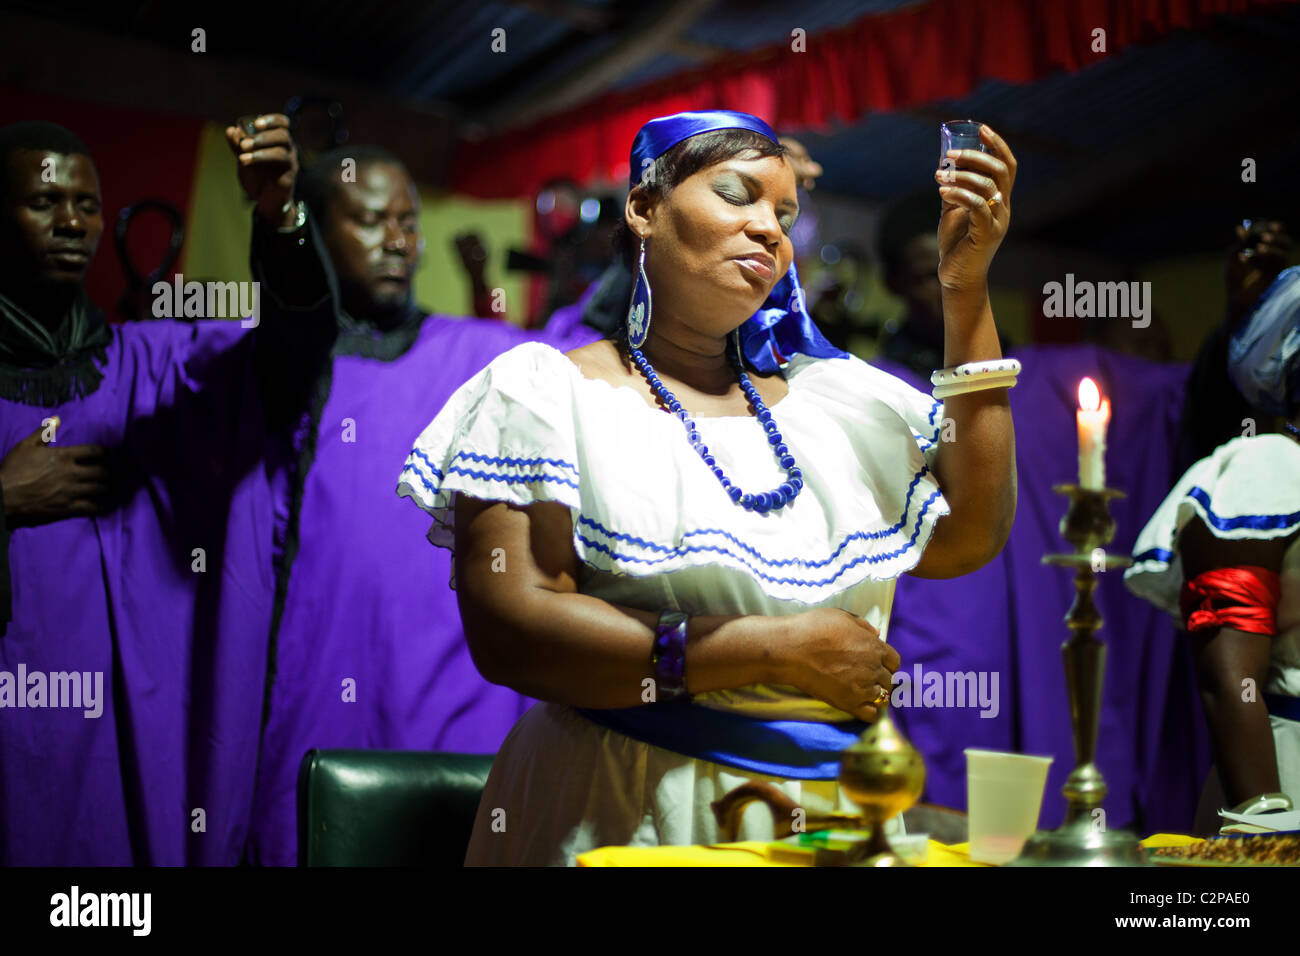 Voodoo ceremony in port Au Prince on the first anniversary of 2010 Haiti earthquake. - Stock Image